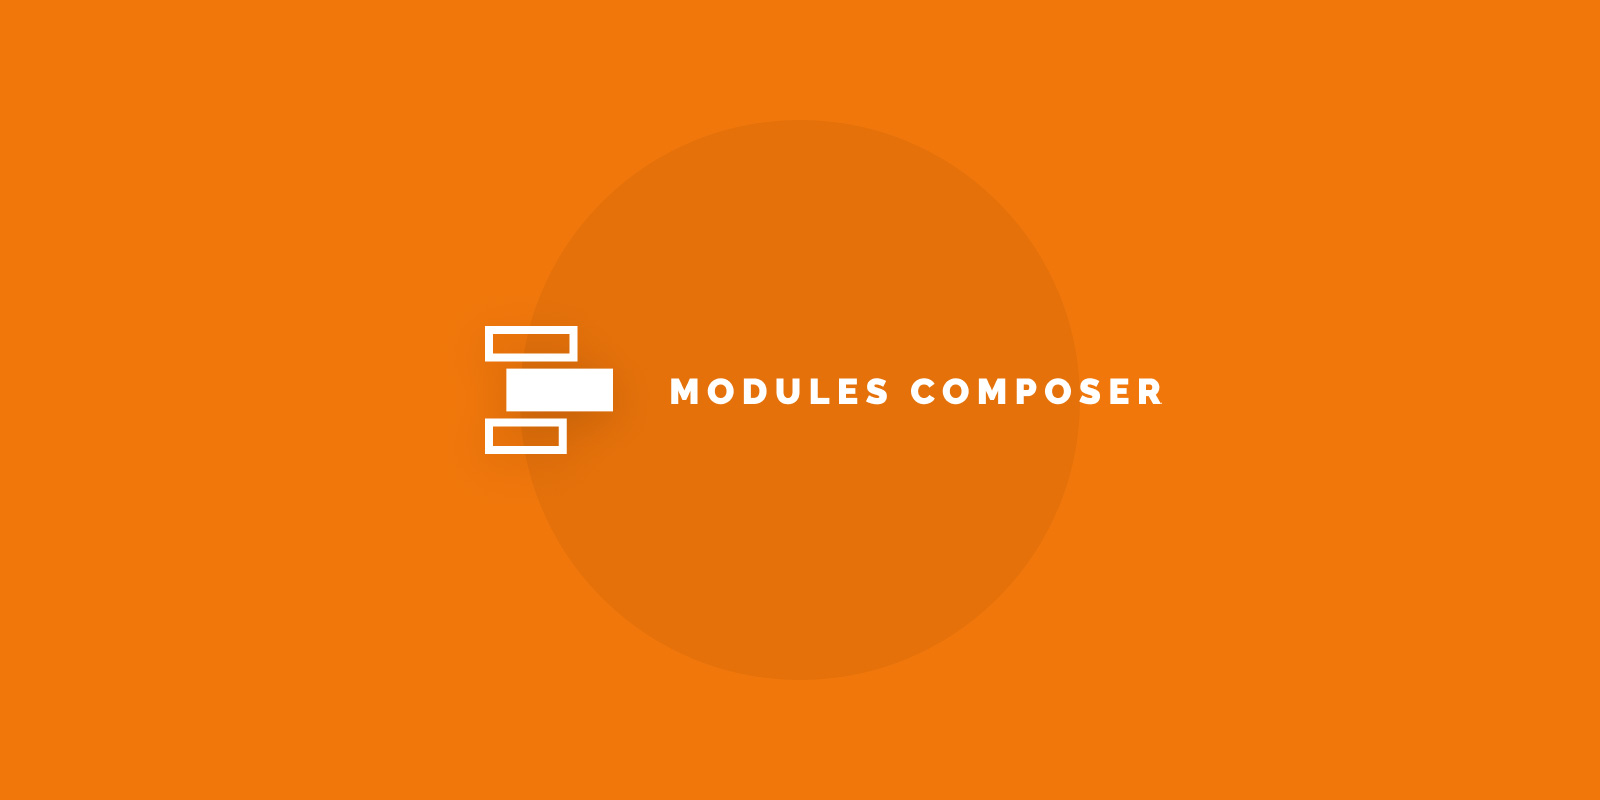 Modules Composer – Some words about this helpful tool